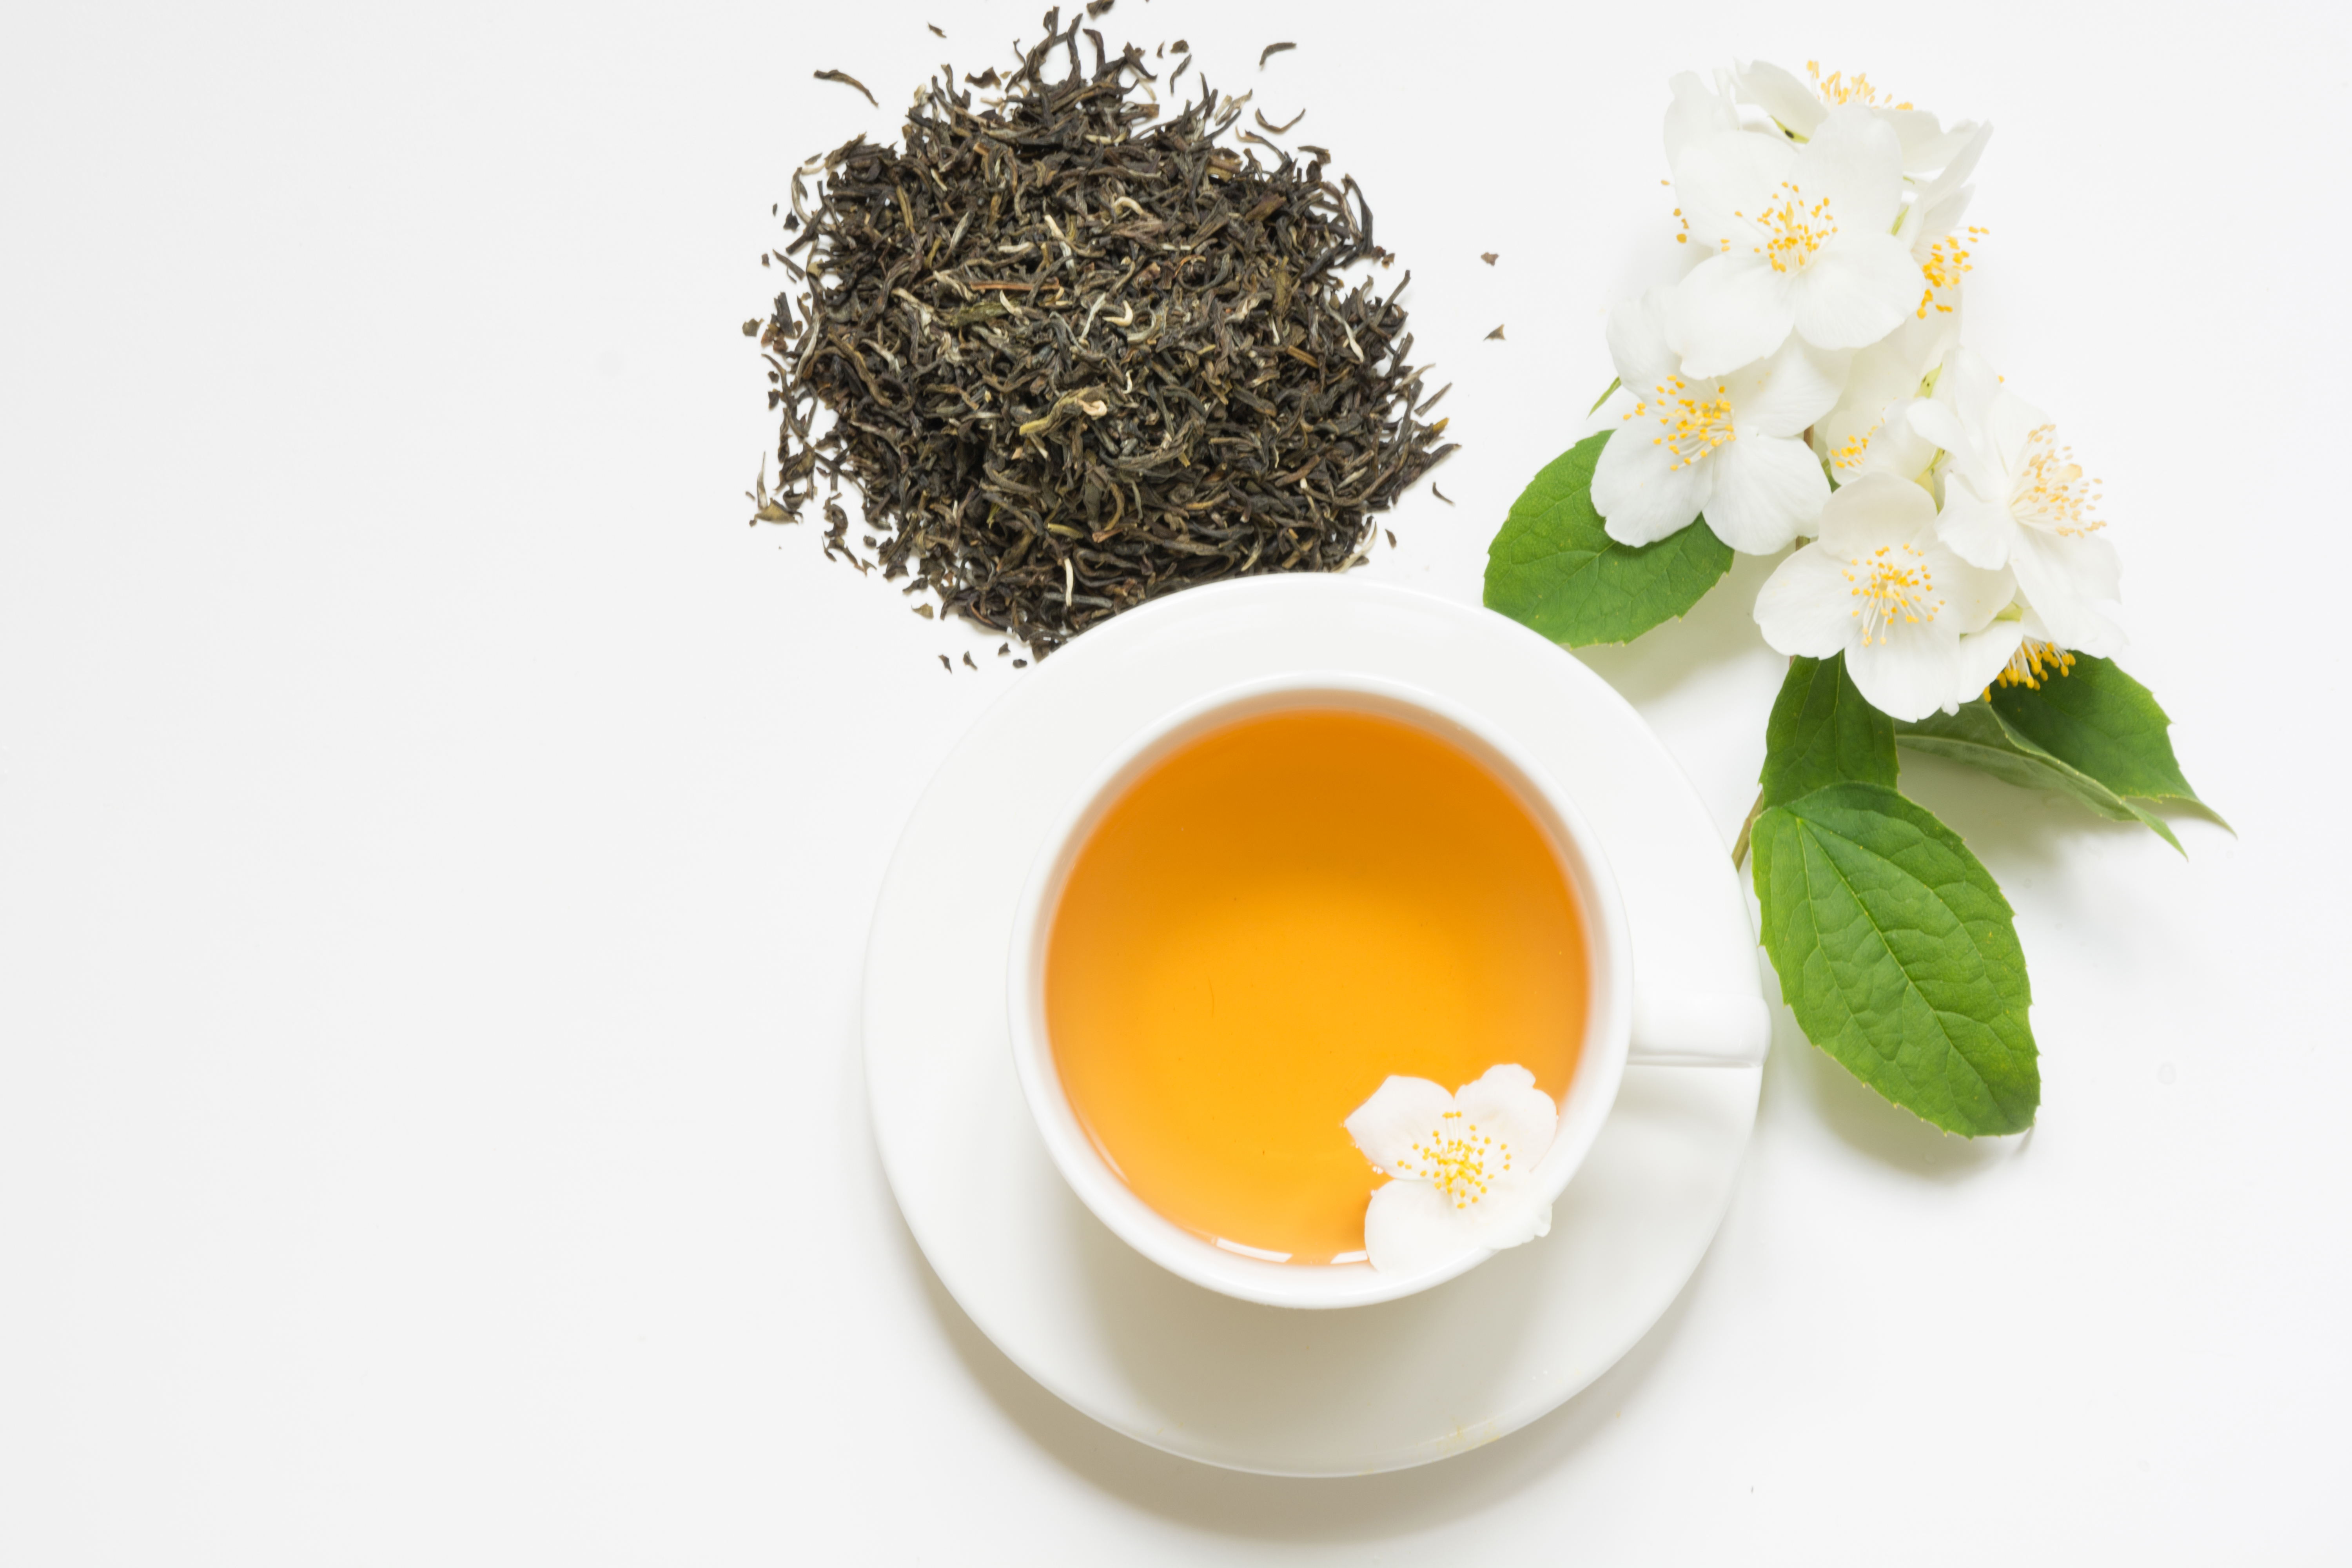 is drinking ginseng & green tea good for the body? | healthy